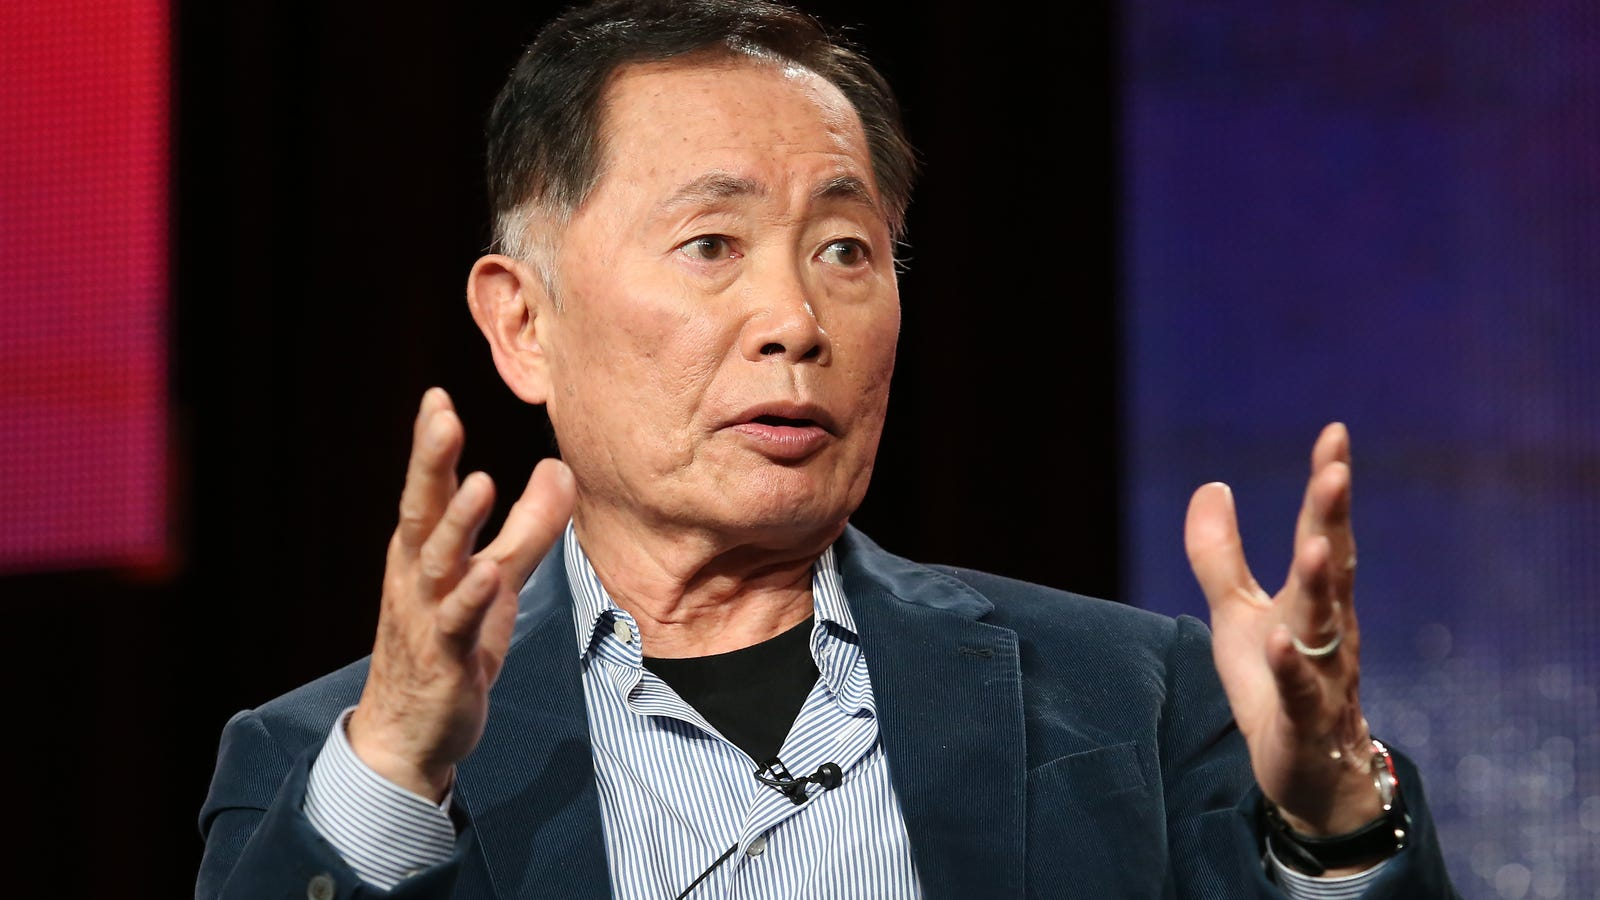 The George Takei sexual assault story just keeps getting worse